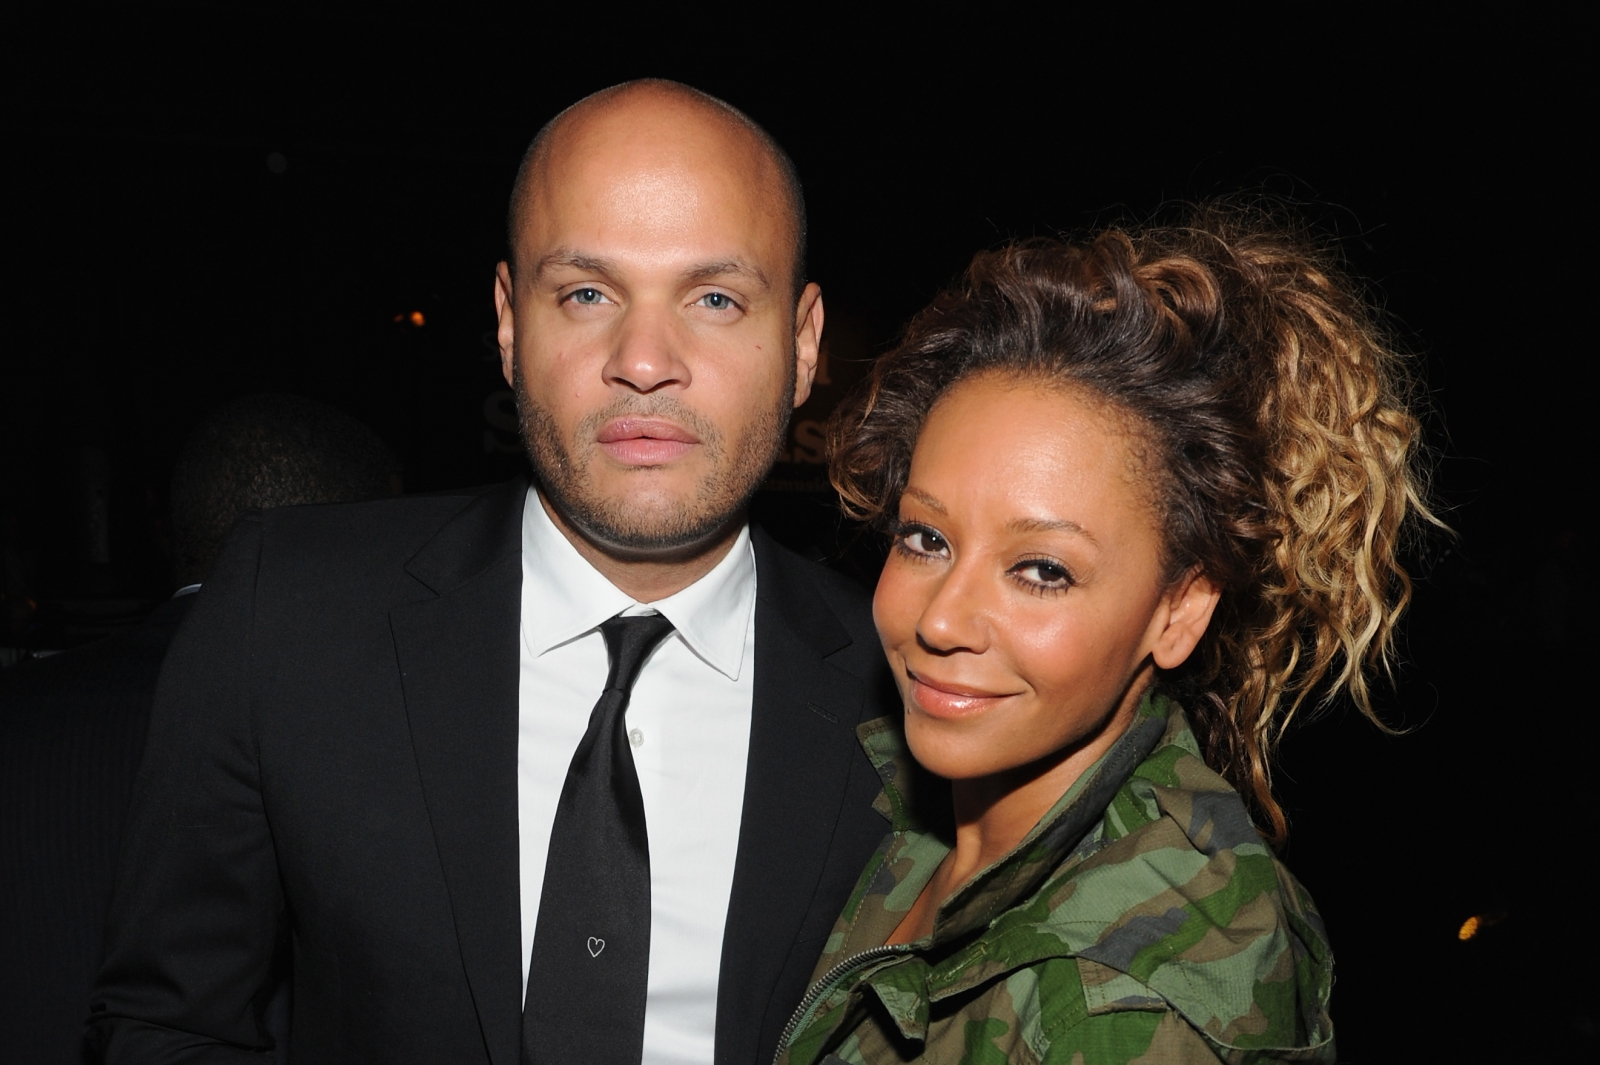 Battle of the exes: Mel B refuses to pay Stephen Belafonte 4k monthly allowance amid divorce drama